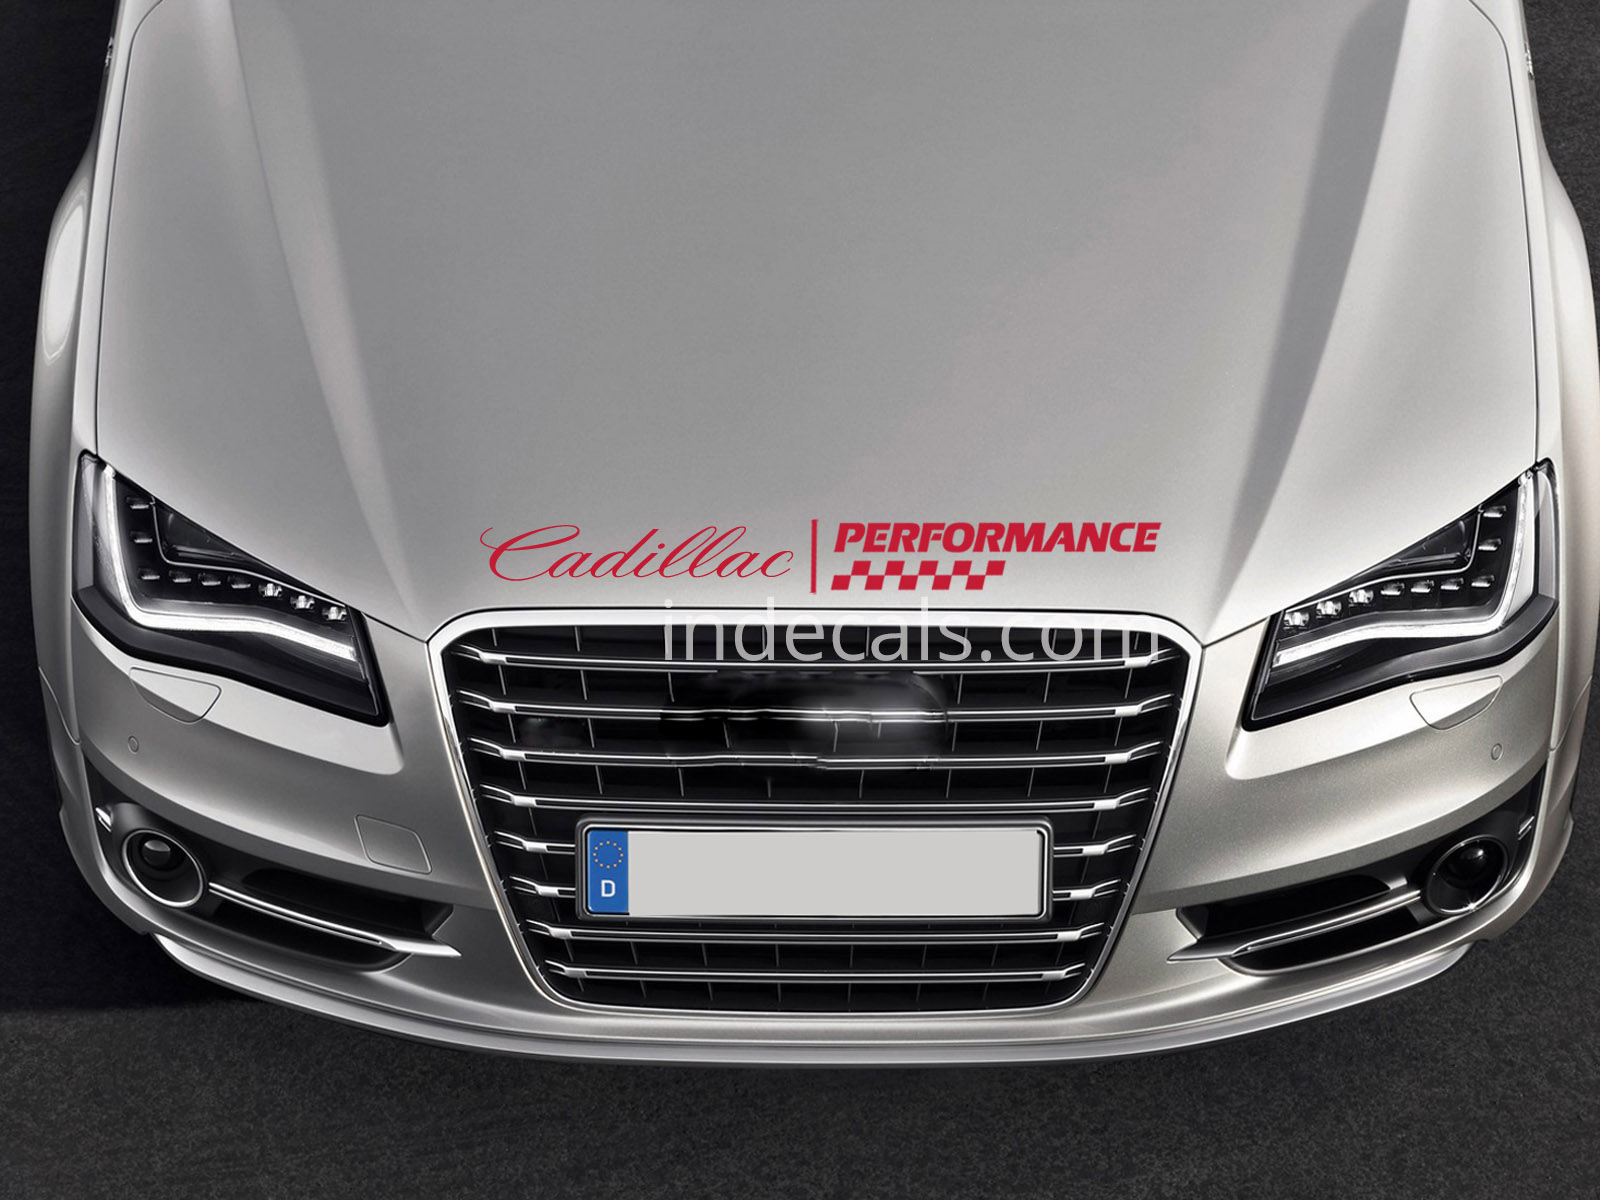 1 x Cadillac Performance Sticker for Bonnet - Red